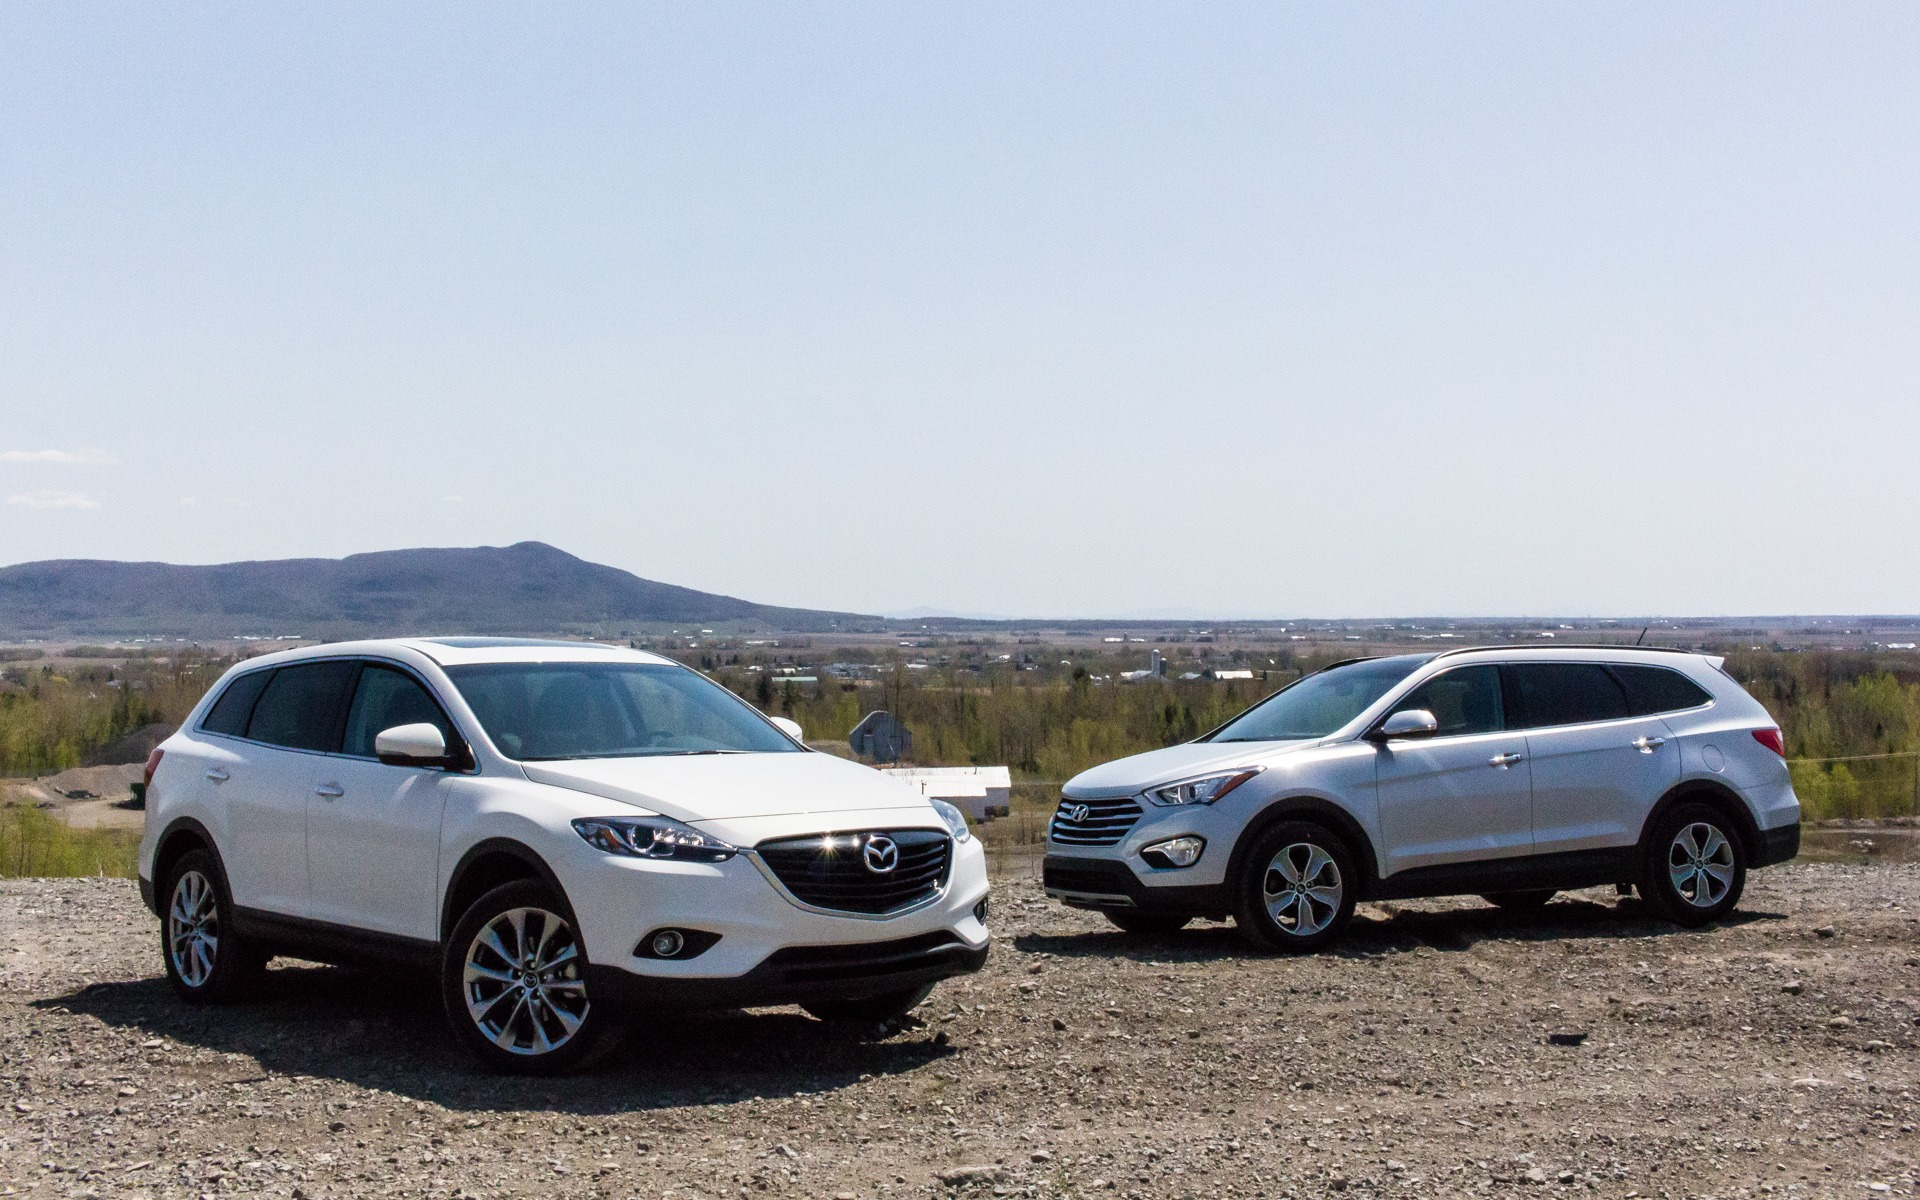 Mazda Santa Fe >> Mazda Cx 9 Vs Hyundai Santa Fe Xl Two Asian Vehicles For